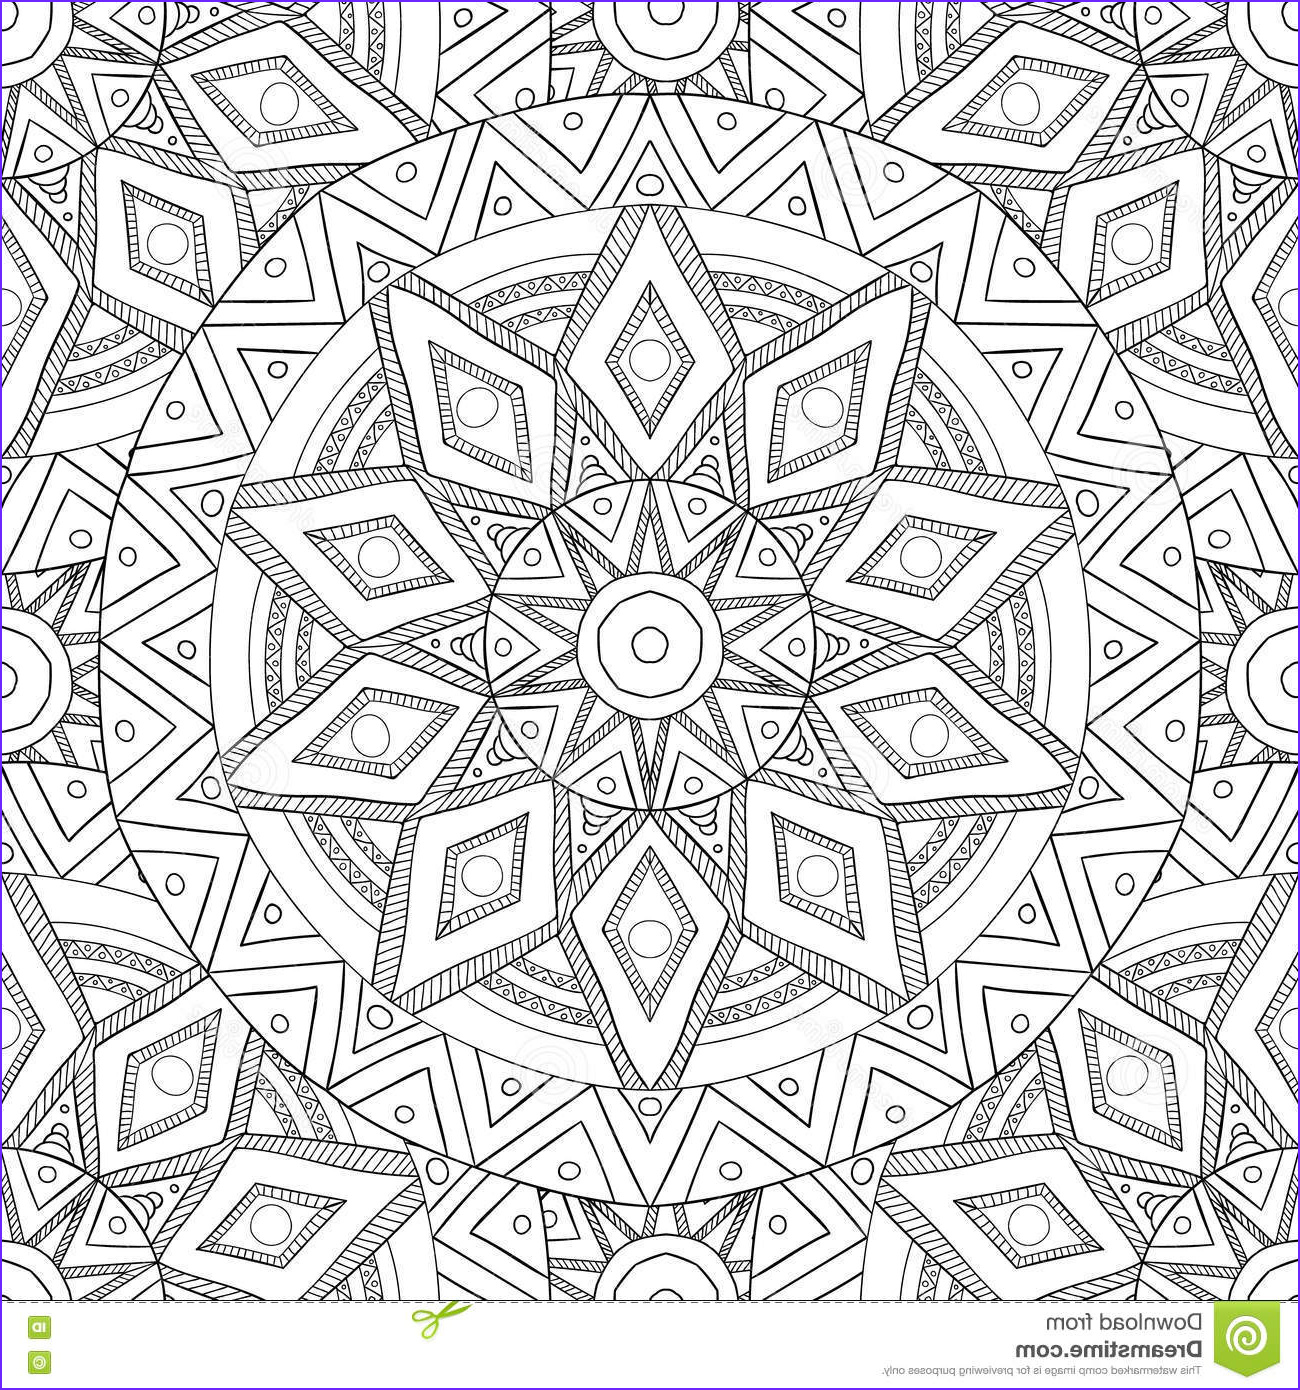 Nature Coloring Books for Adults Inspirational Collection Coloring Pages for Adults Decorative Hand Drawn Doodle